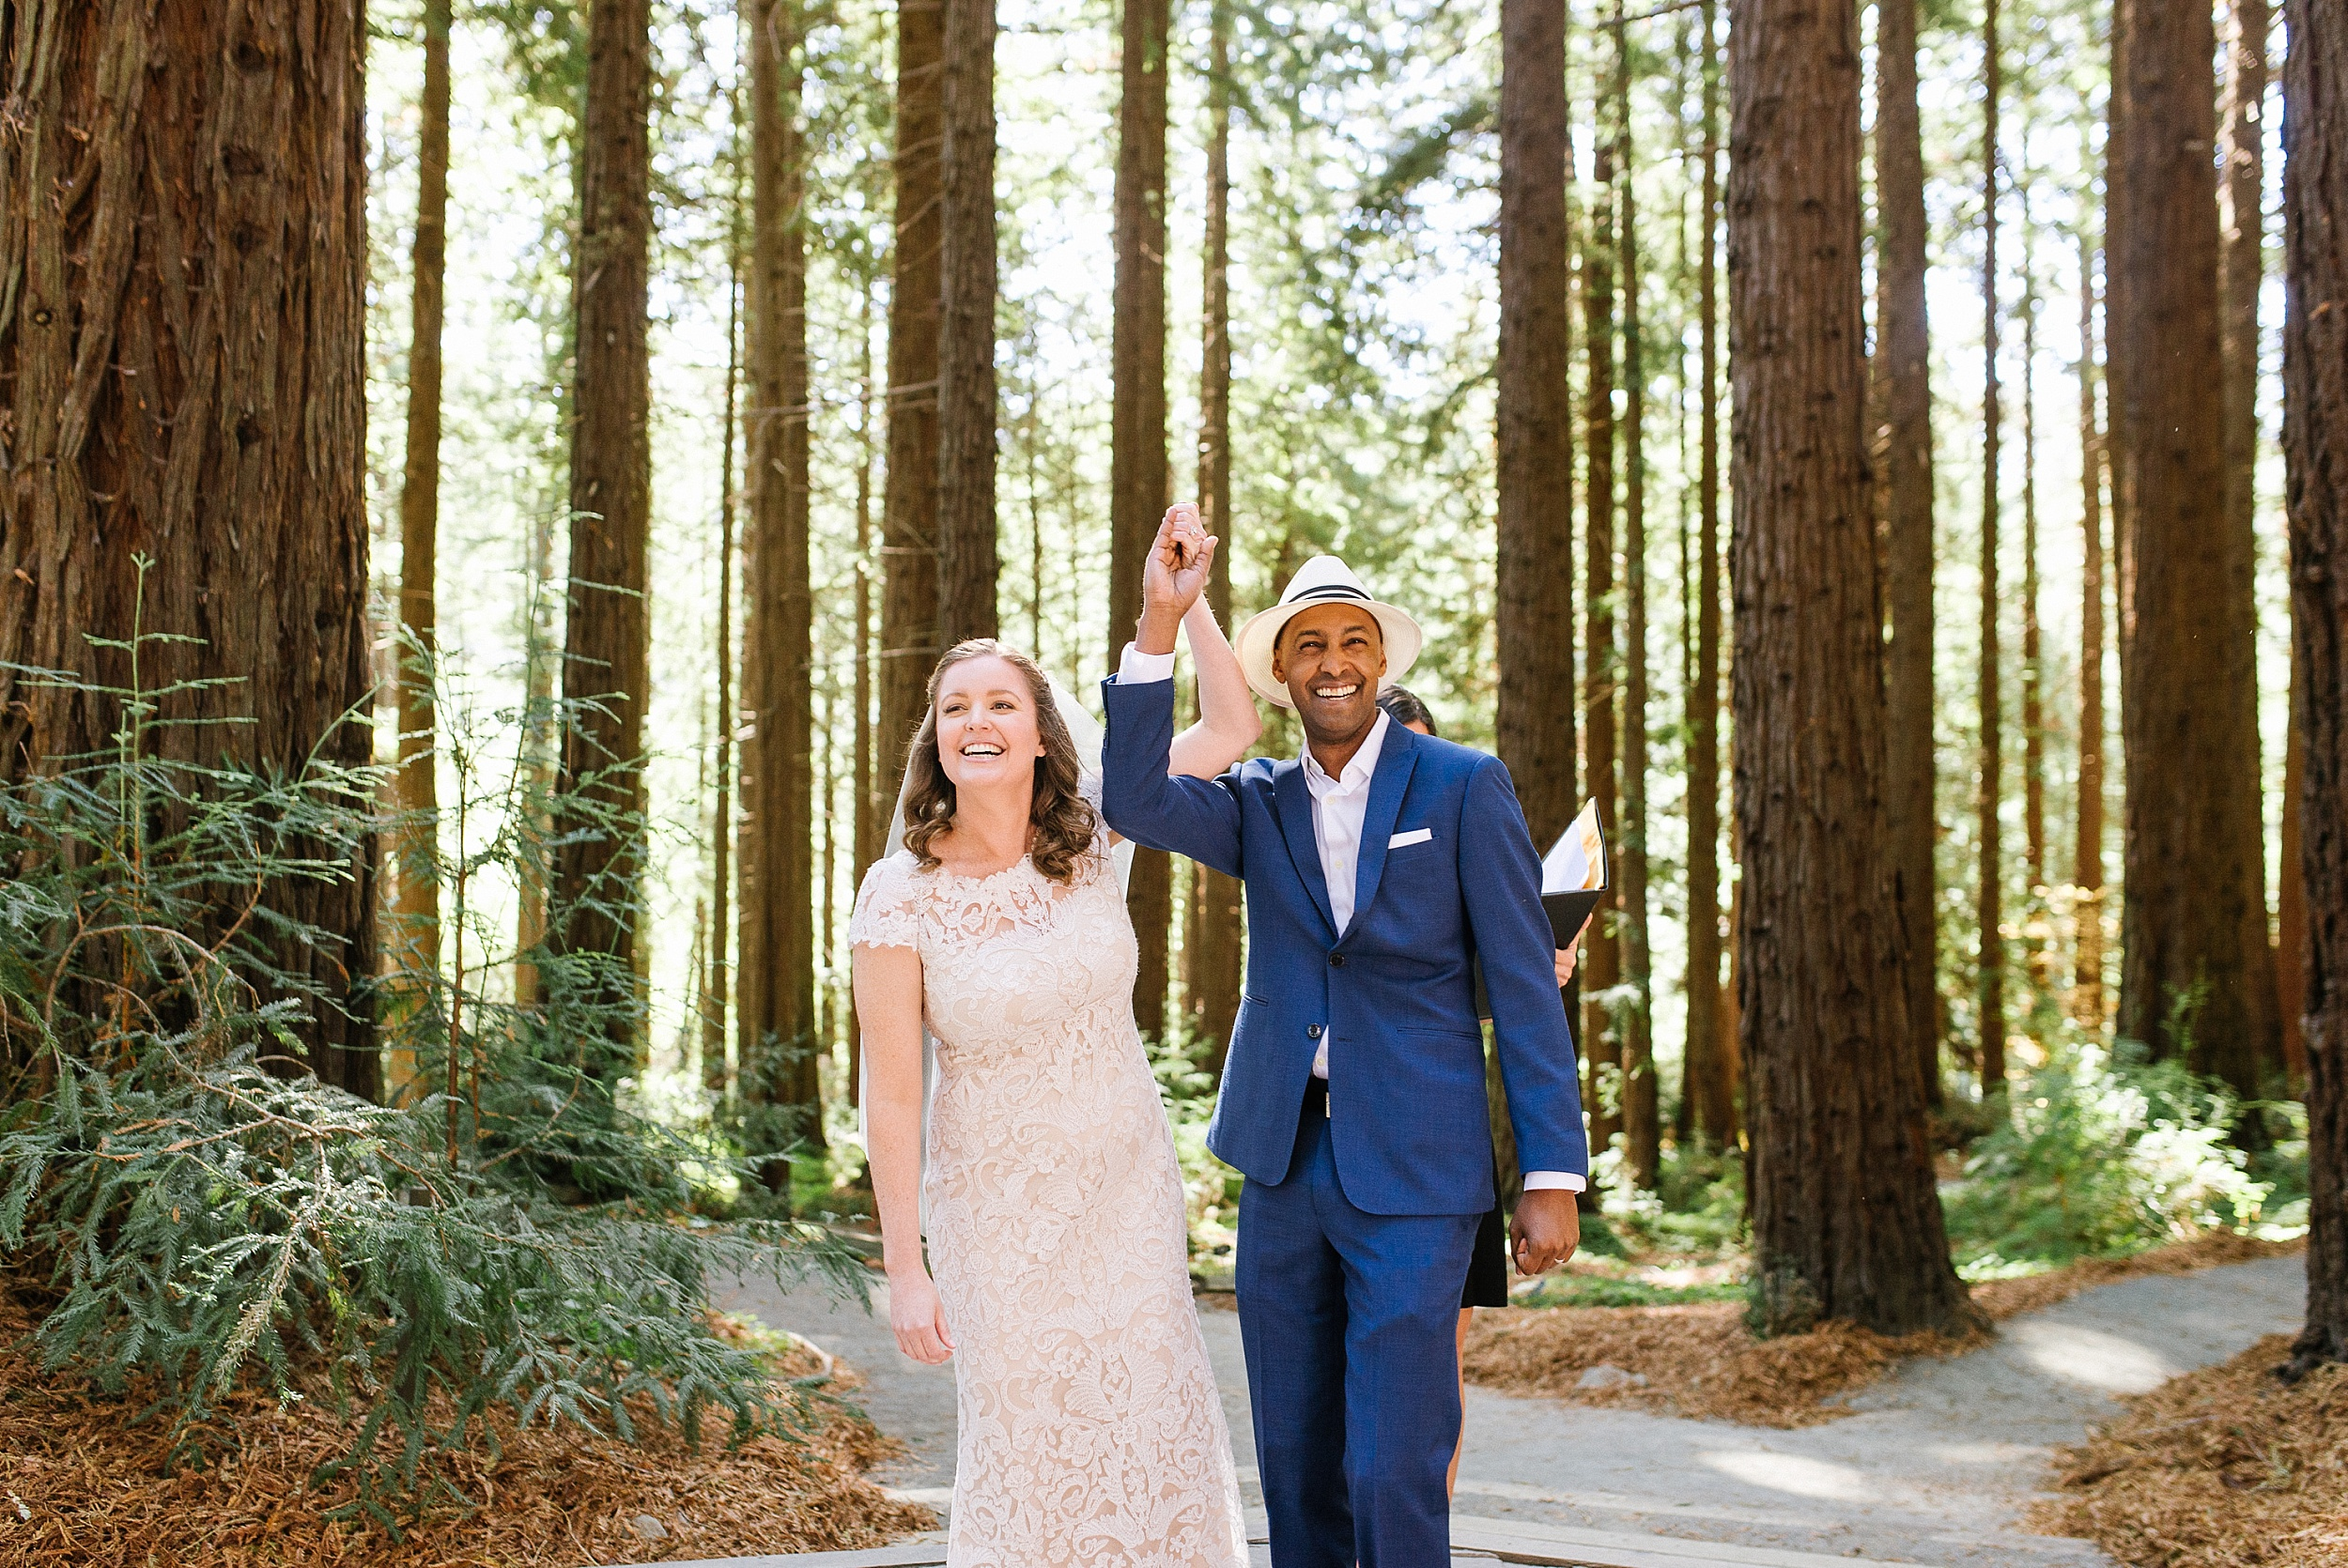 ucberkeley_botanical_redwoods_outdoor_wedding_jennyrez_cdp_0044.jpg